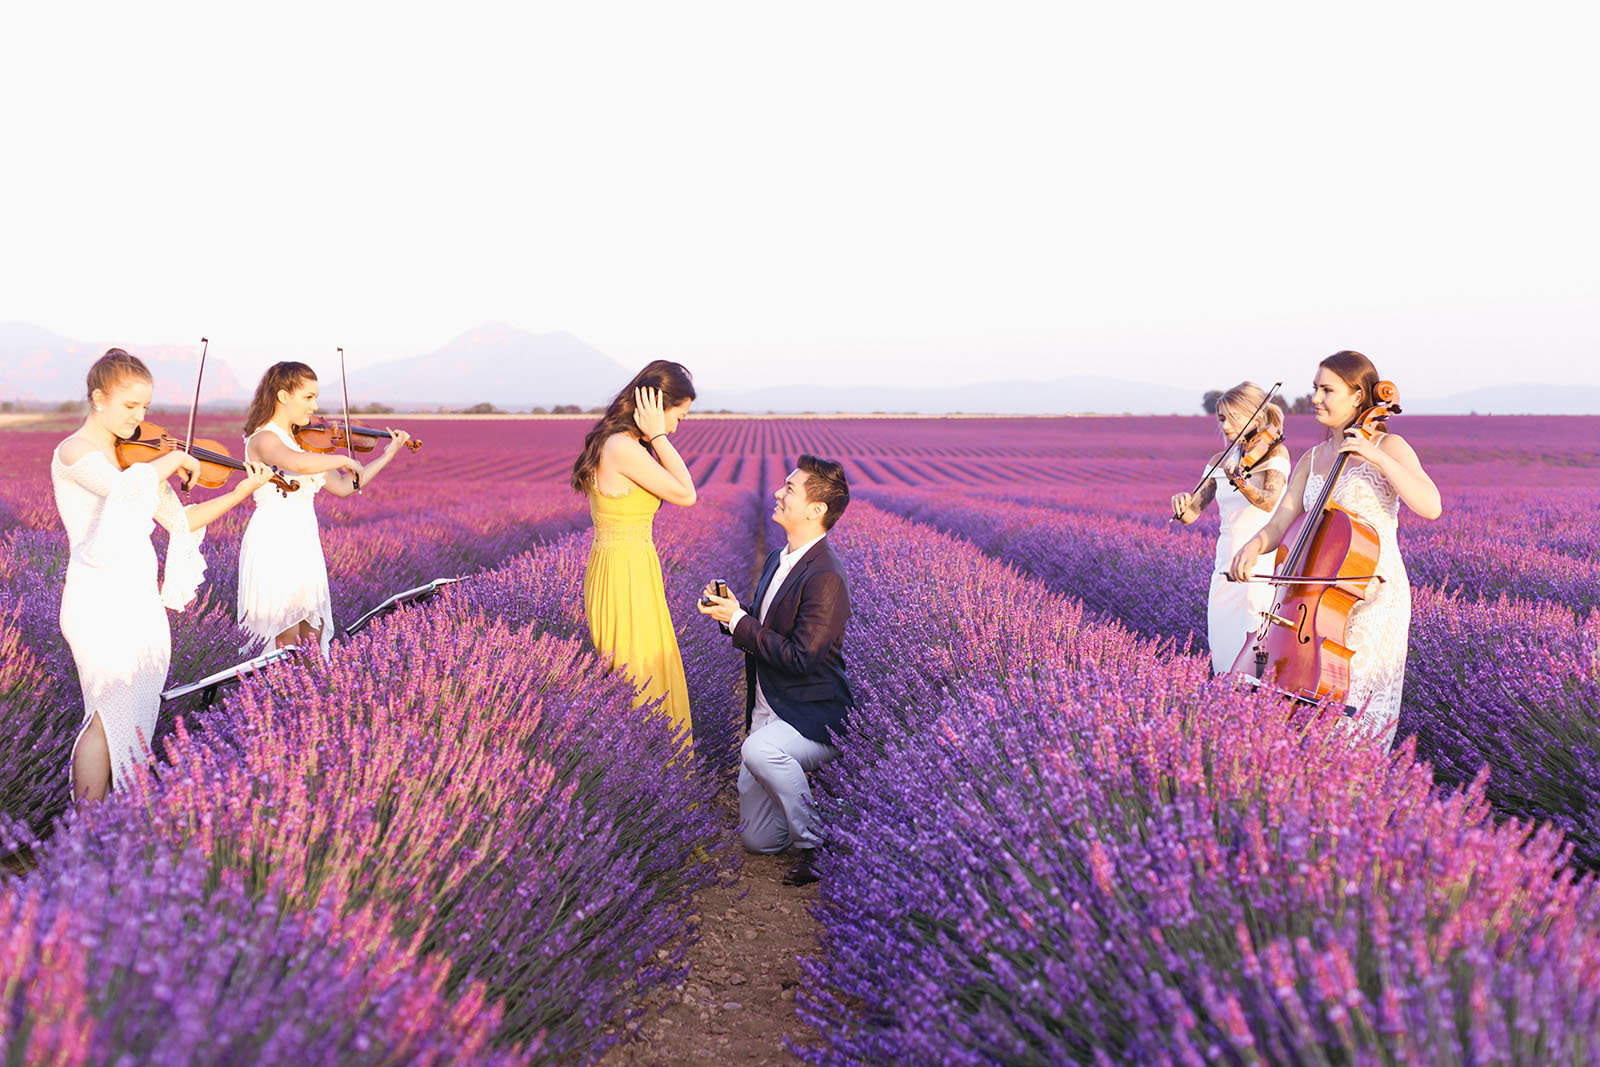 Proposal at the Lavender Fields in Provence, France